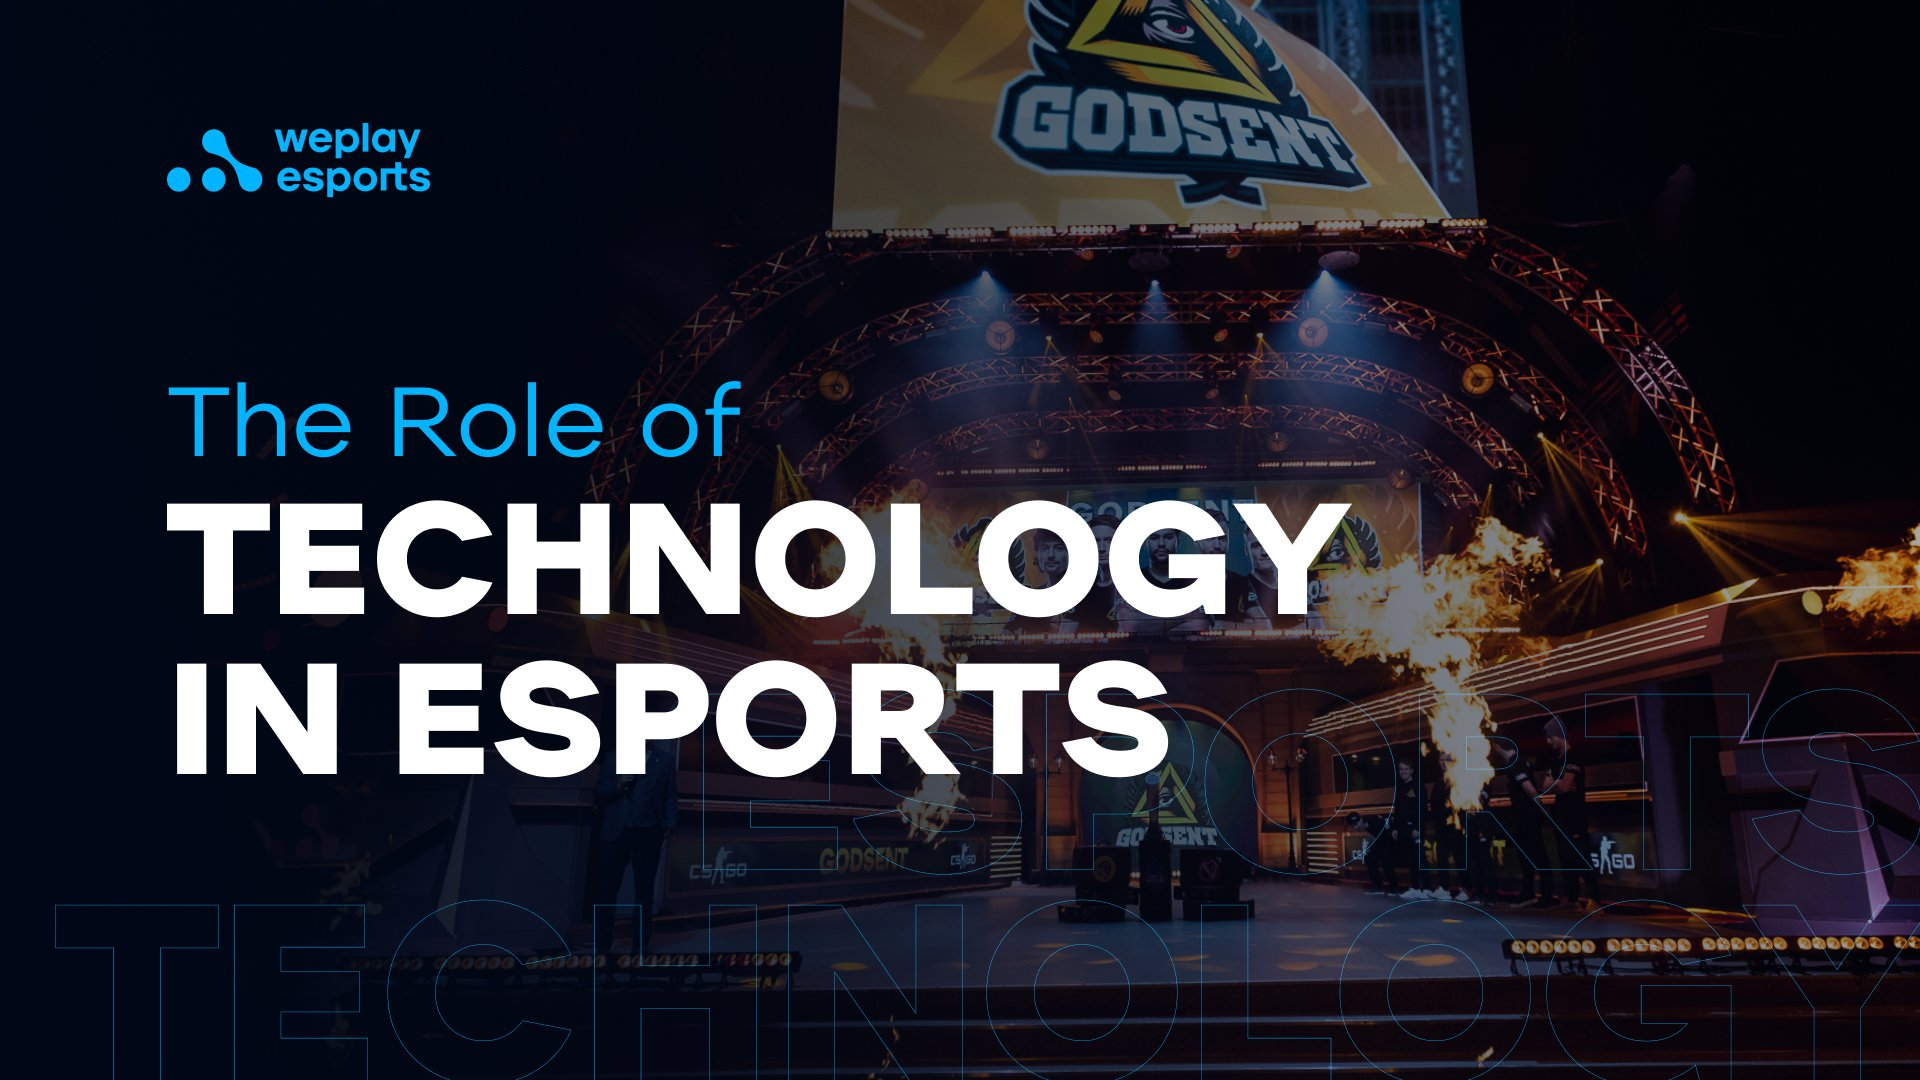 The Role of Technology in Esports